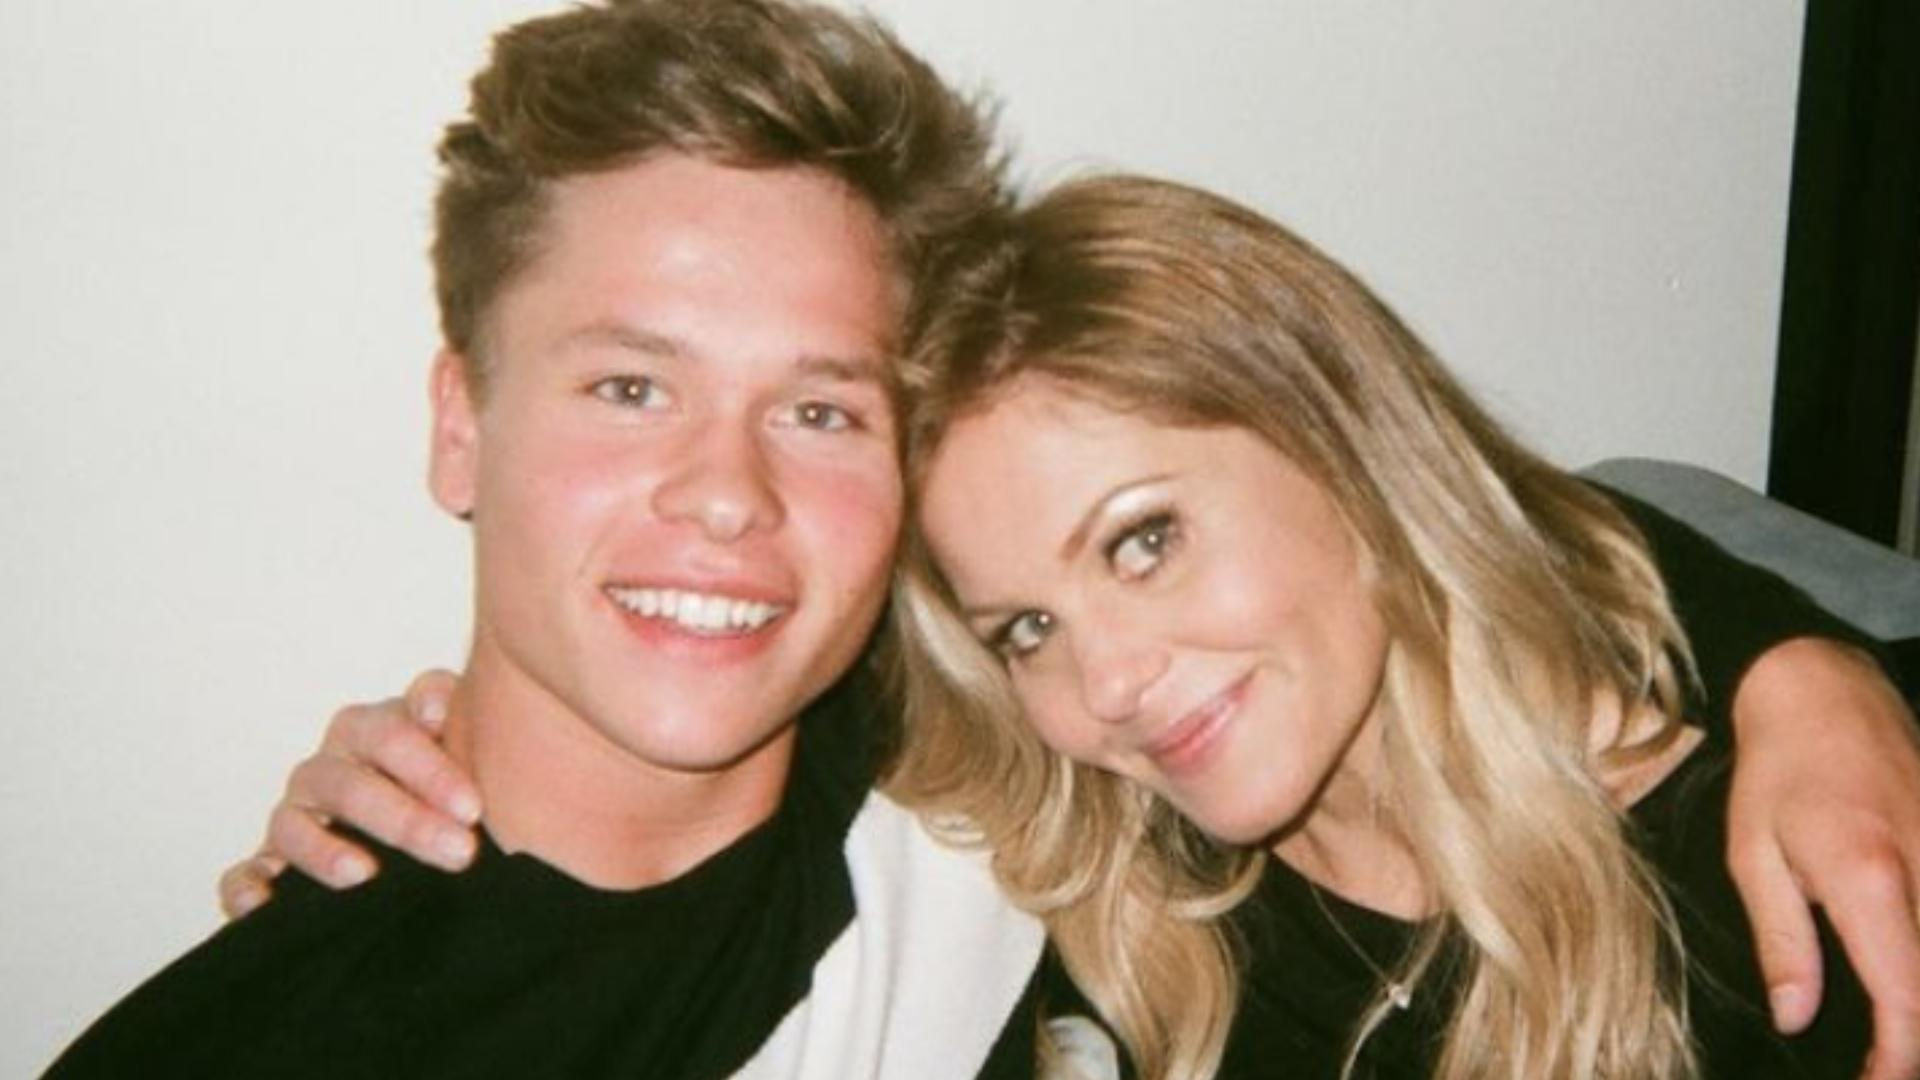 Candace Cameron Bure Reveals Son Lev Is No Longer Engaged: 'It Was A Mutual Decision'